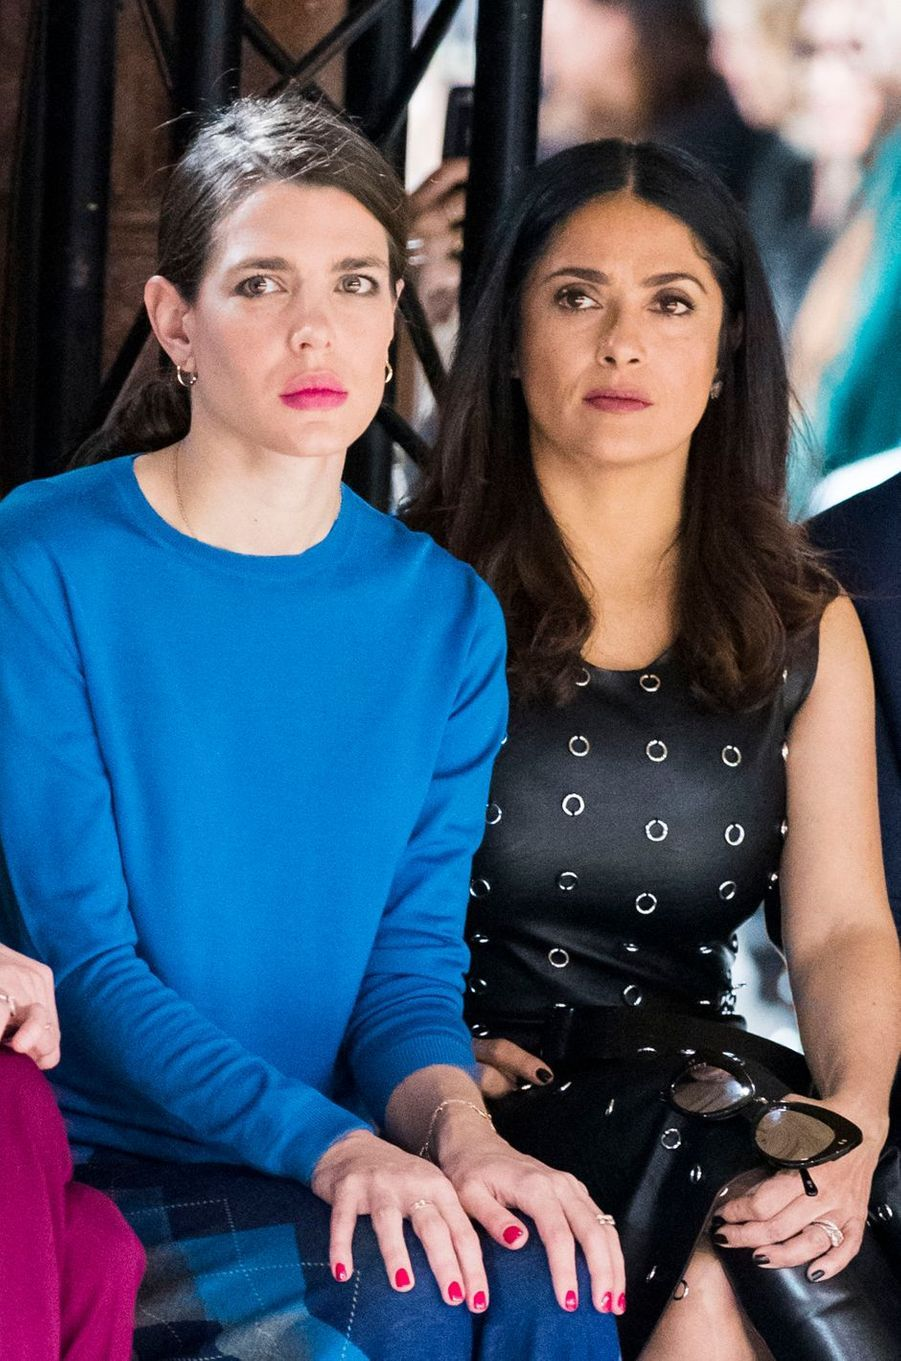 Charlotte Casiraghi avec Salma Hayek au défilé Stella McCartney à la Fashion Week à Paris, le 6 mars 2017